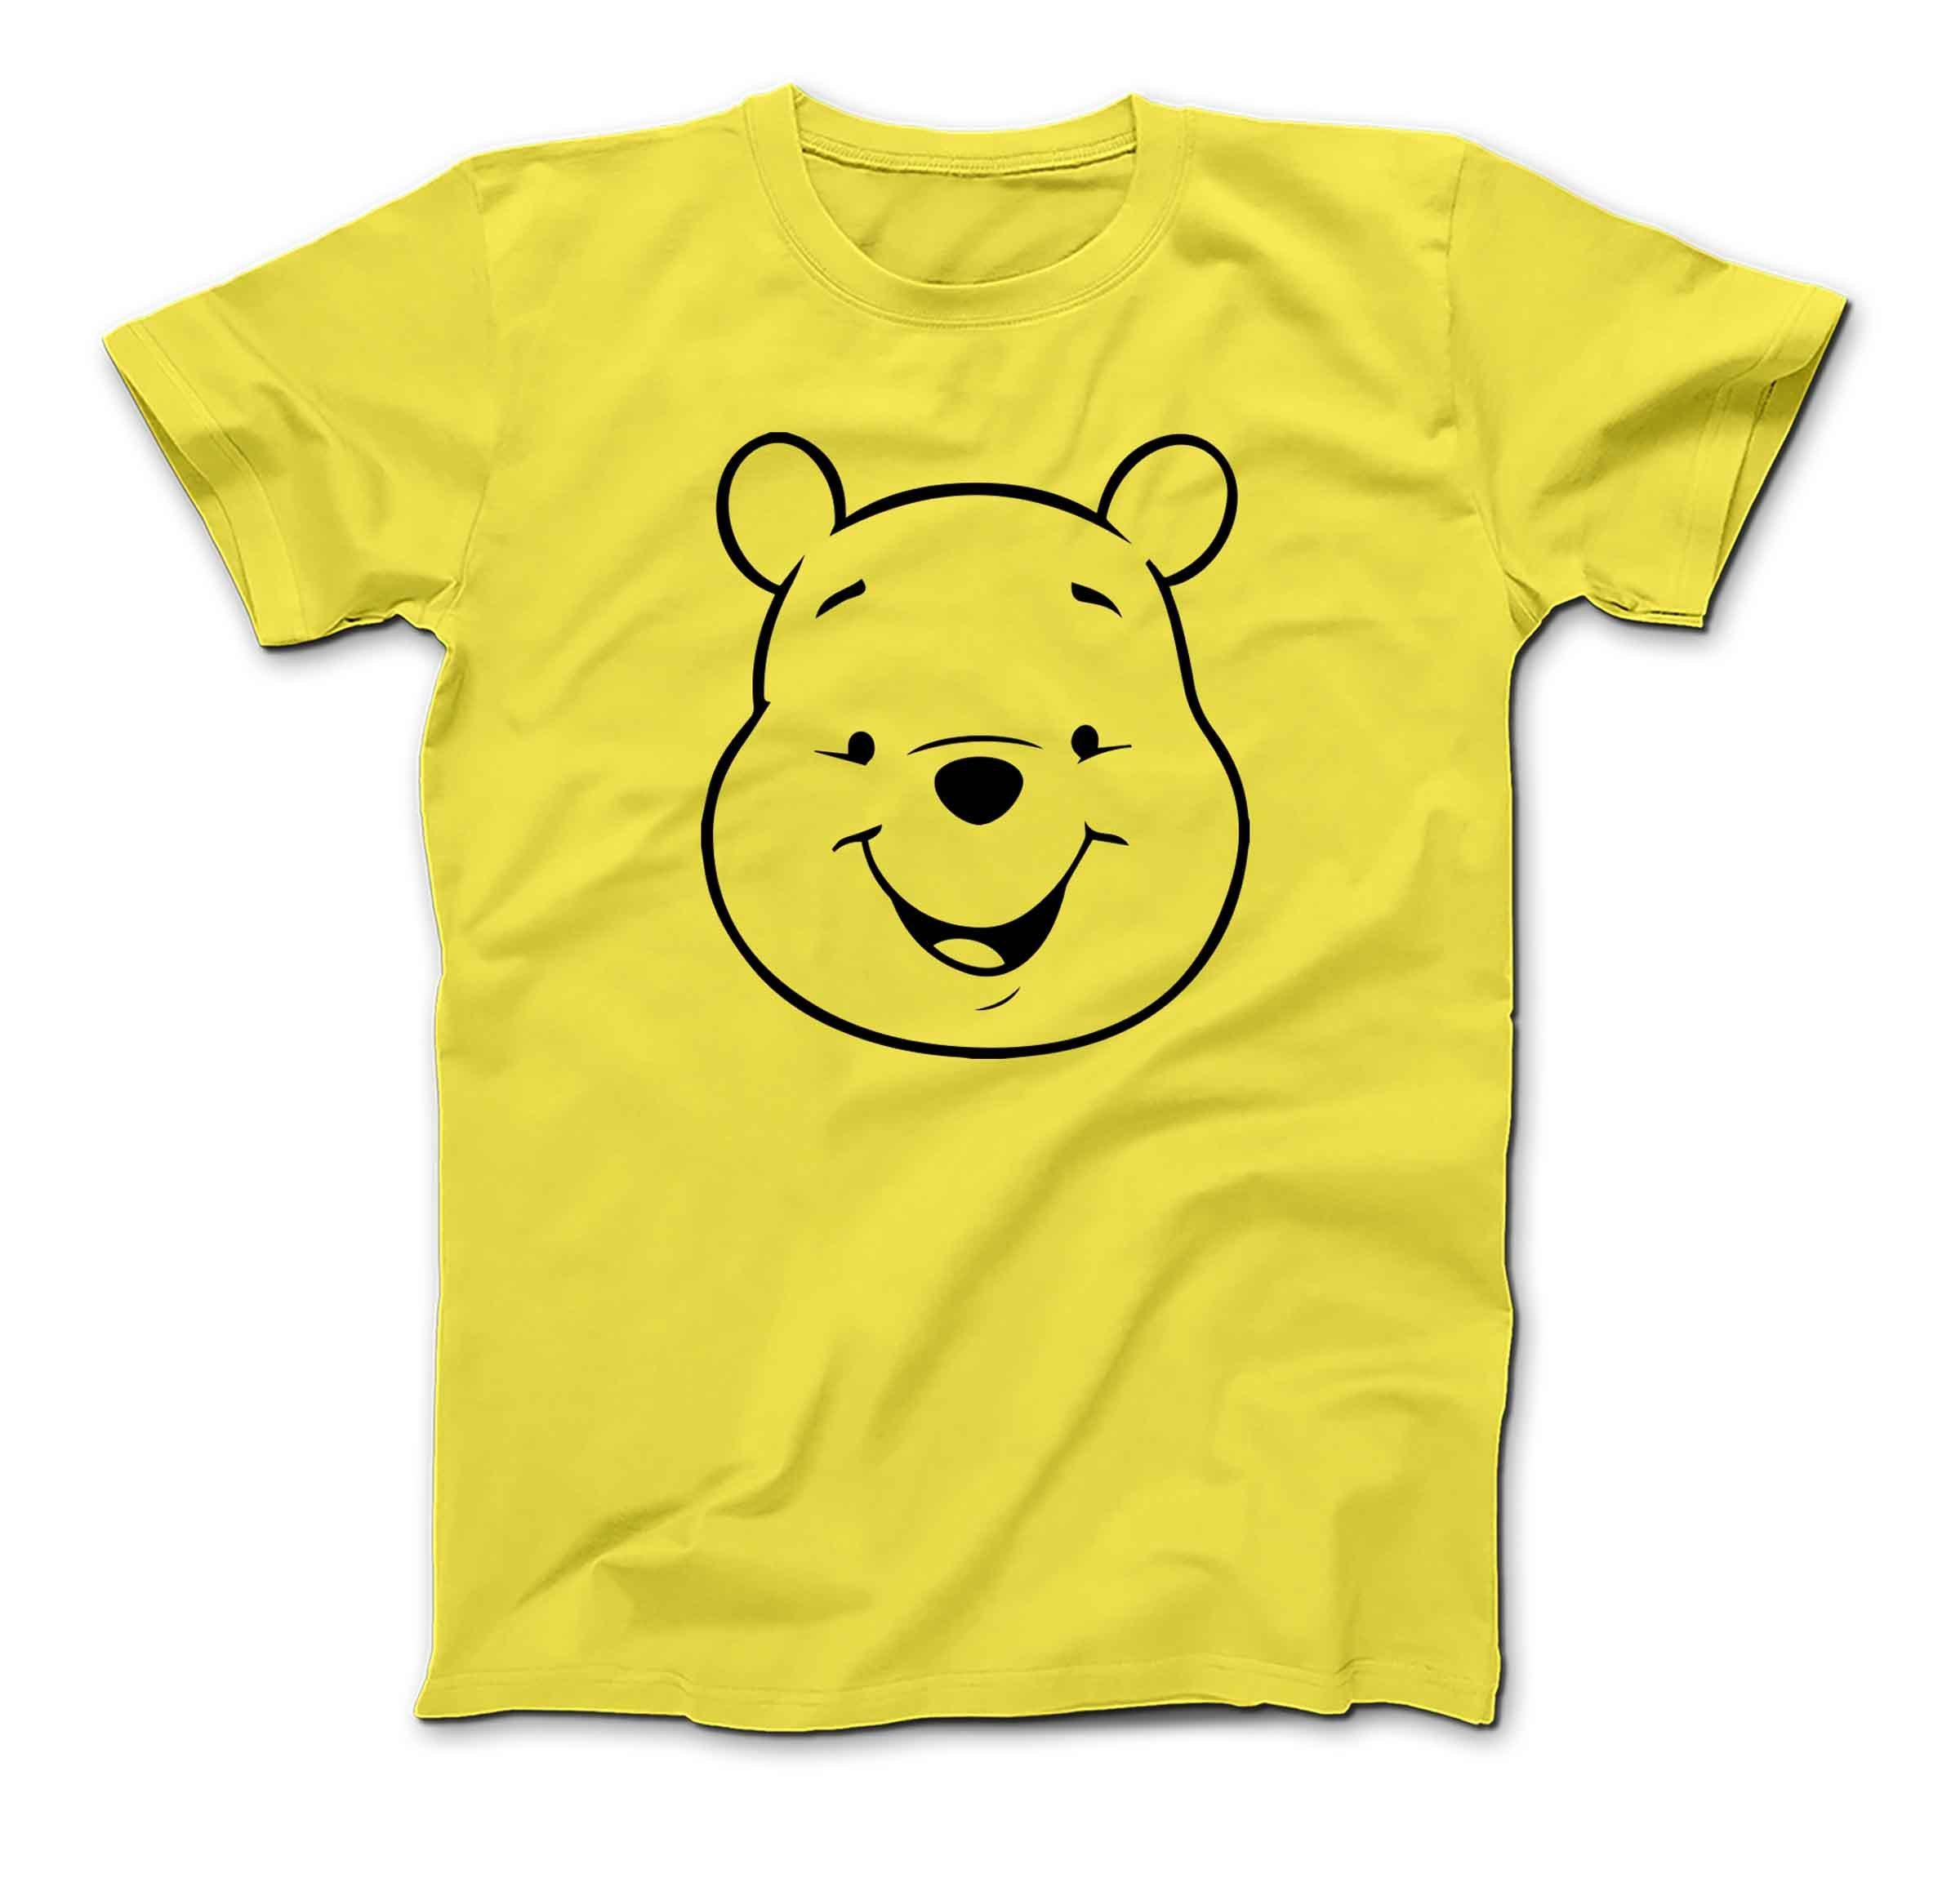 Winnie the pooh and friends mens shirt